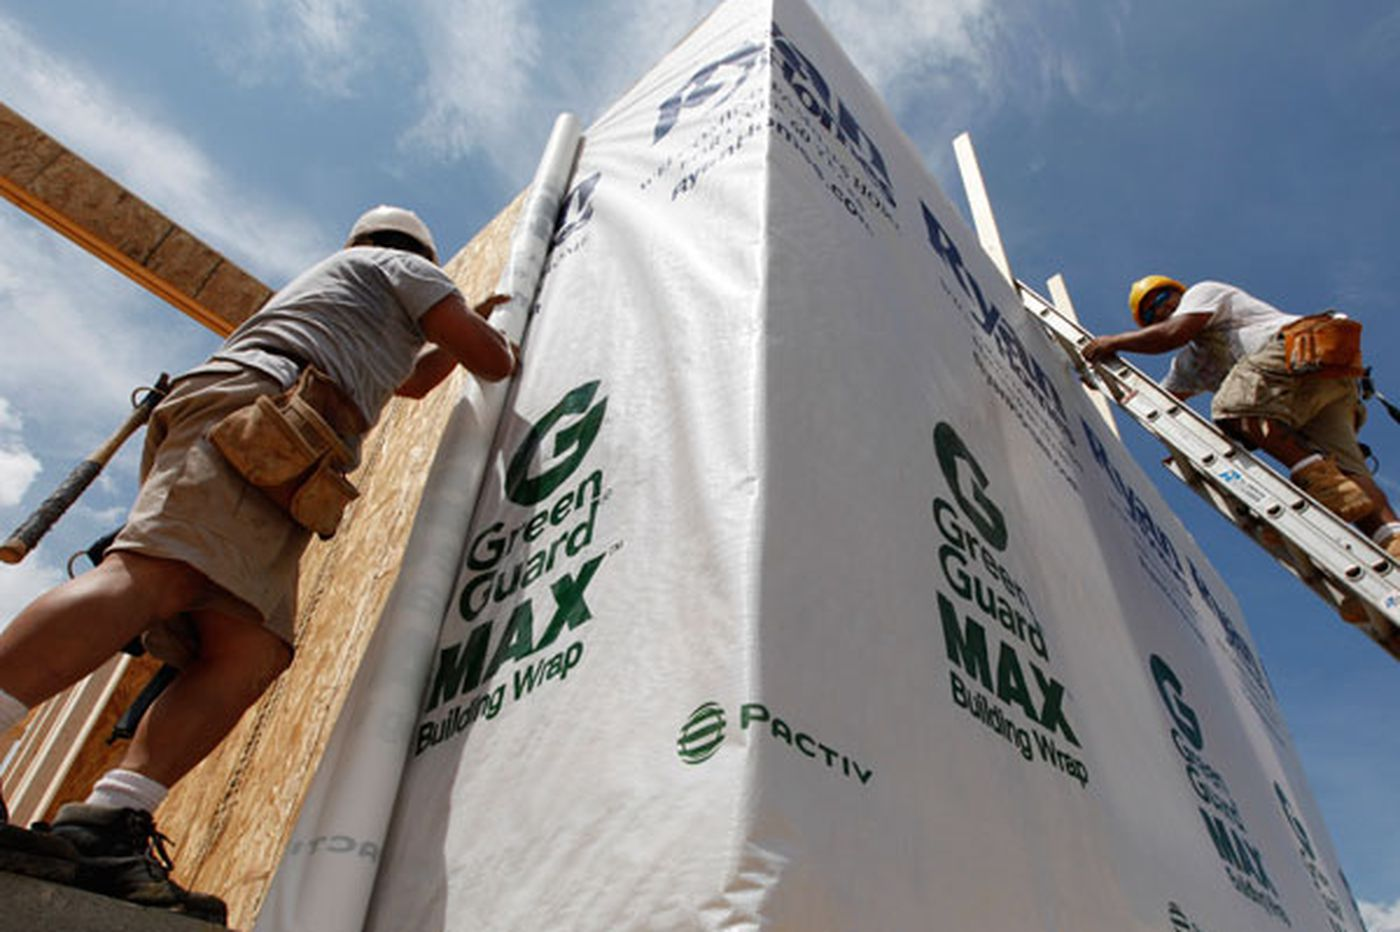 Housing prices show signs of strengthening